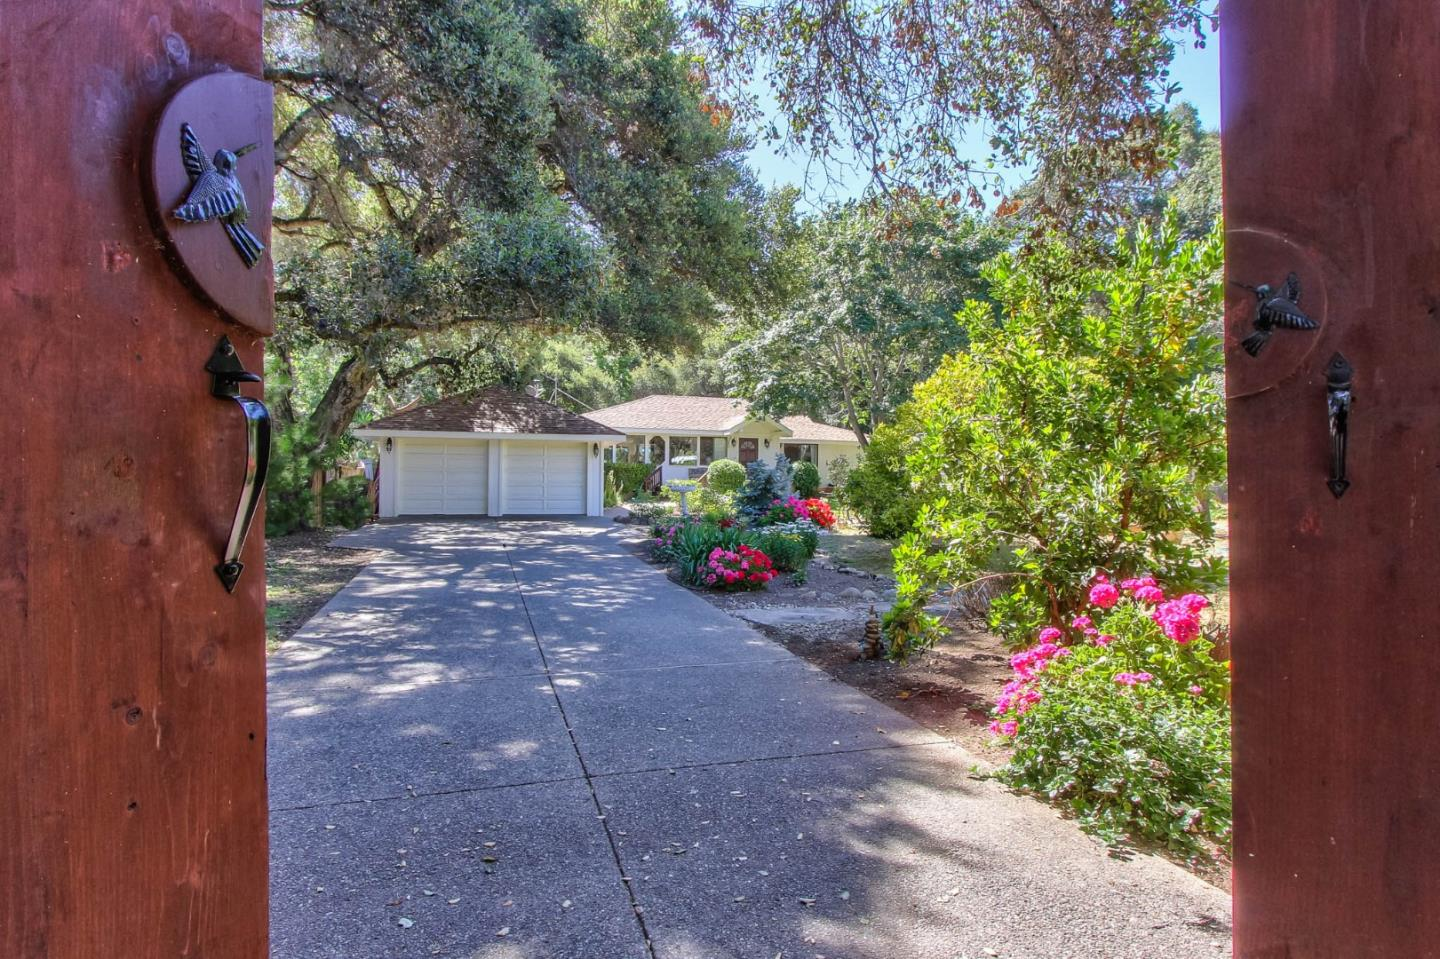 Property for sale at 10 Upper CIR, Carmel Valley,  California 93924